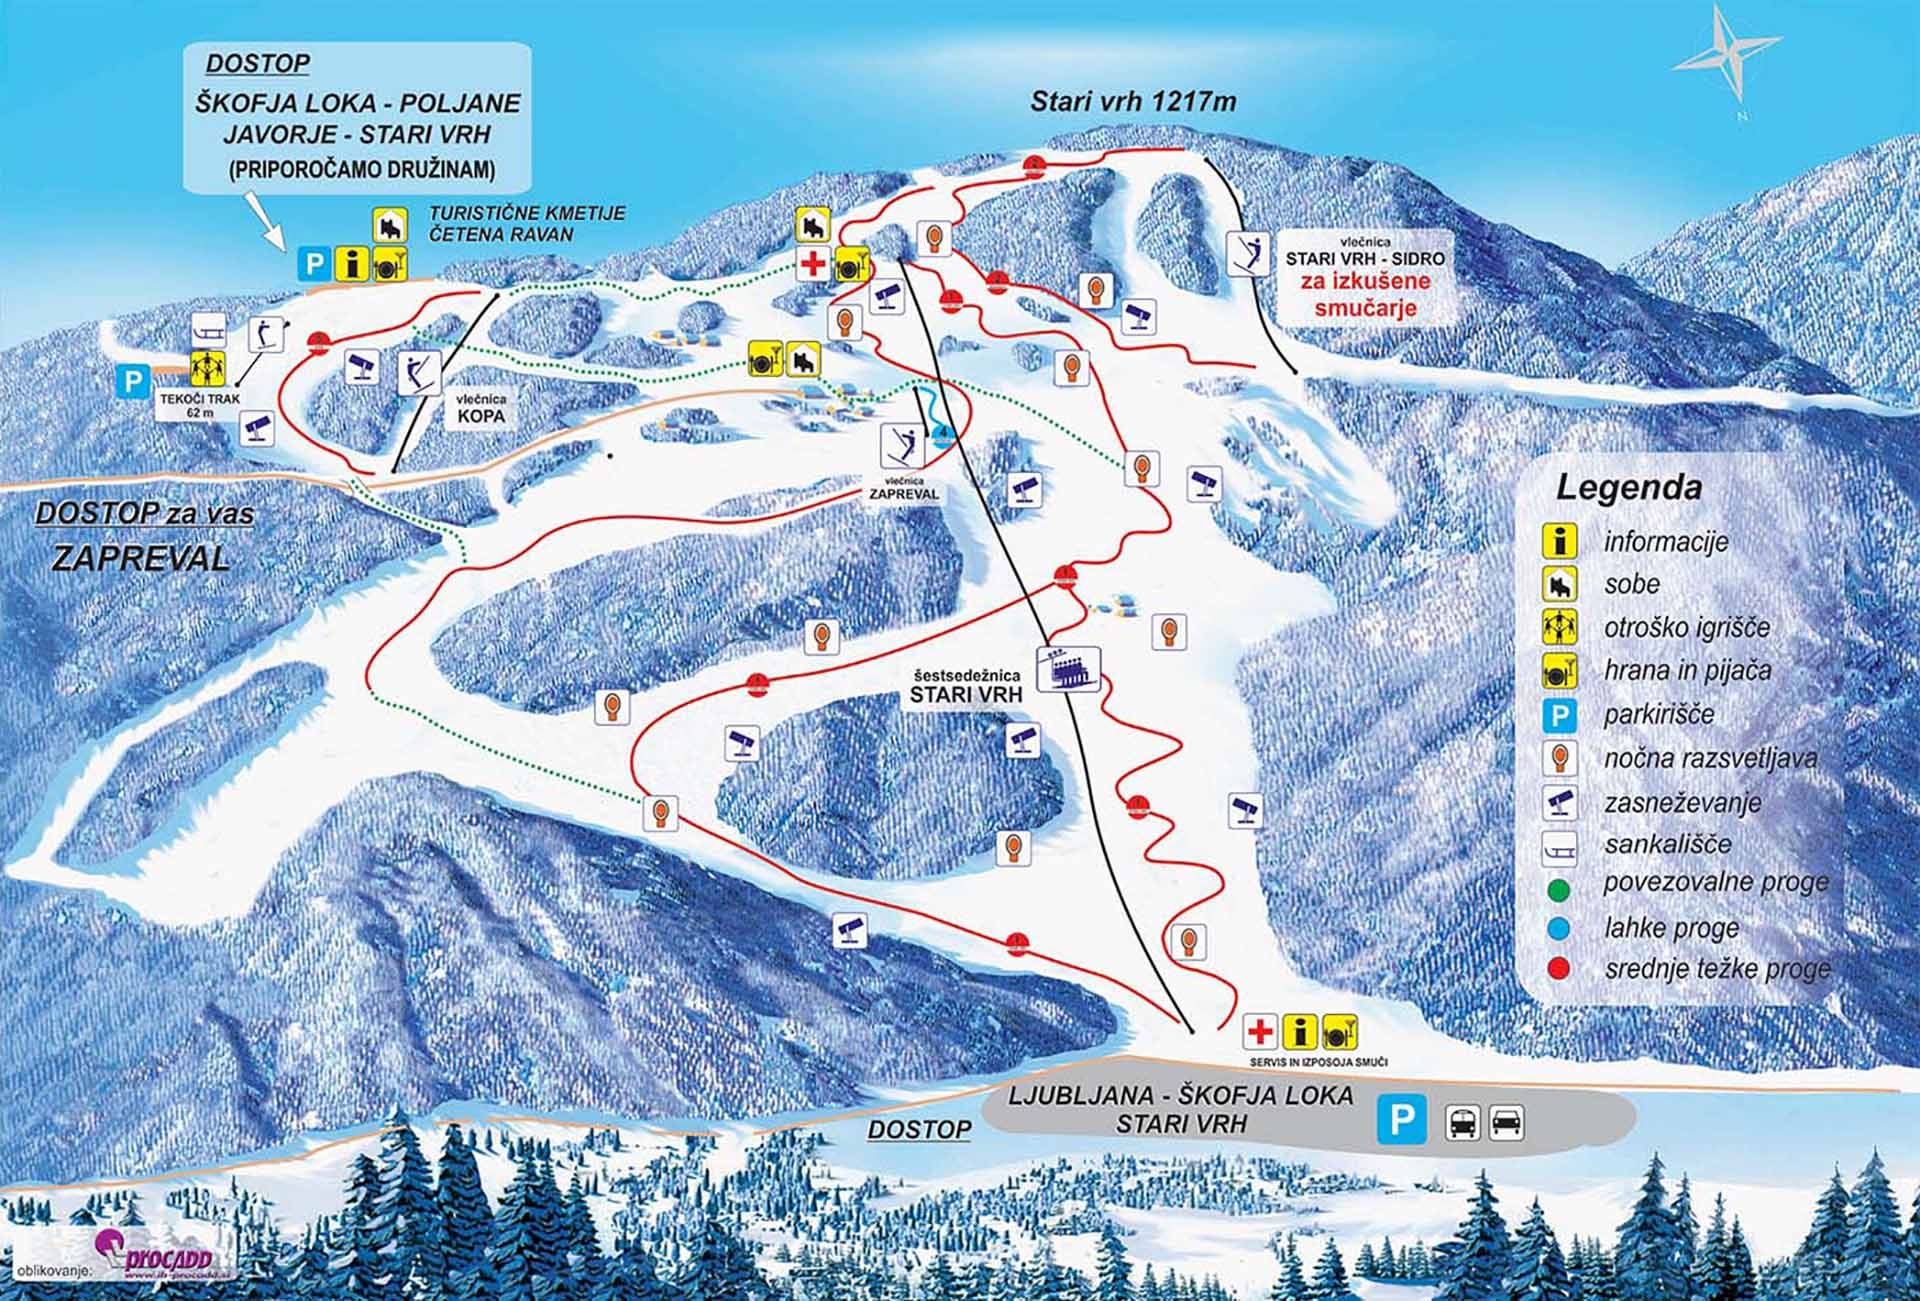 Ski Resorts in Snia - Your ultimate guide to Skiing in Snia! on